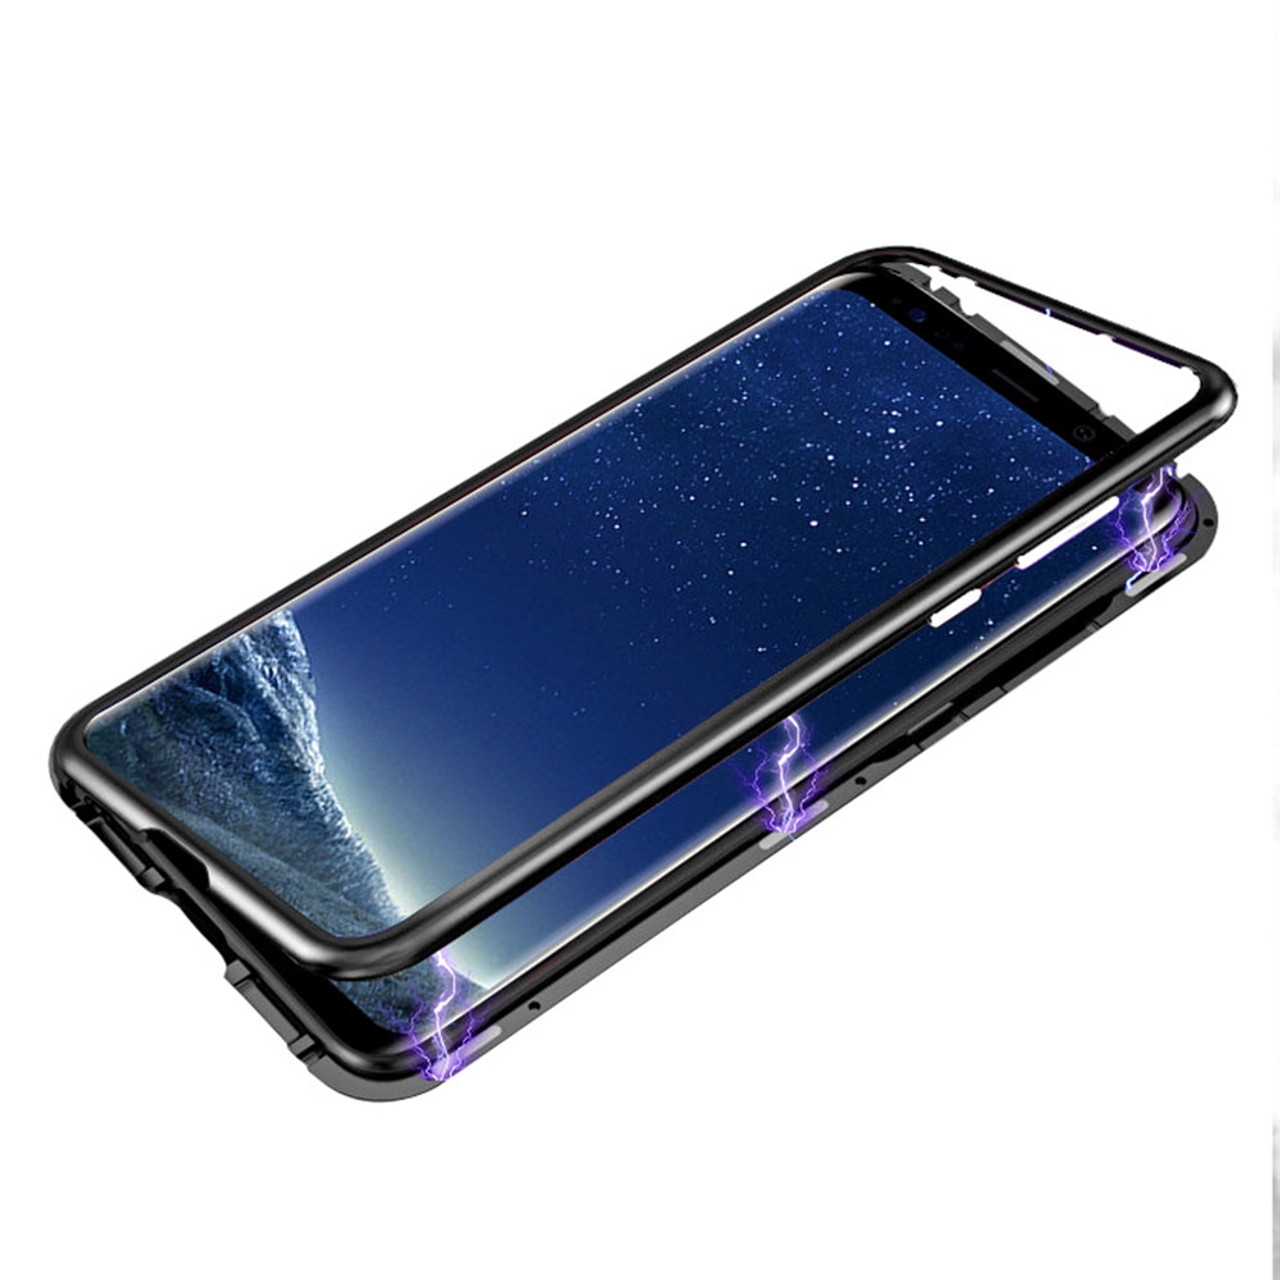 online store f80e2 513a2 Eqvvol Magnetic Adsorption Metal Case For Samsung Galaxy S9 S8 Plus S7 Edge  Tempered Glass Back Magnet Cover For Note 8 9 Cases